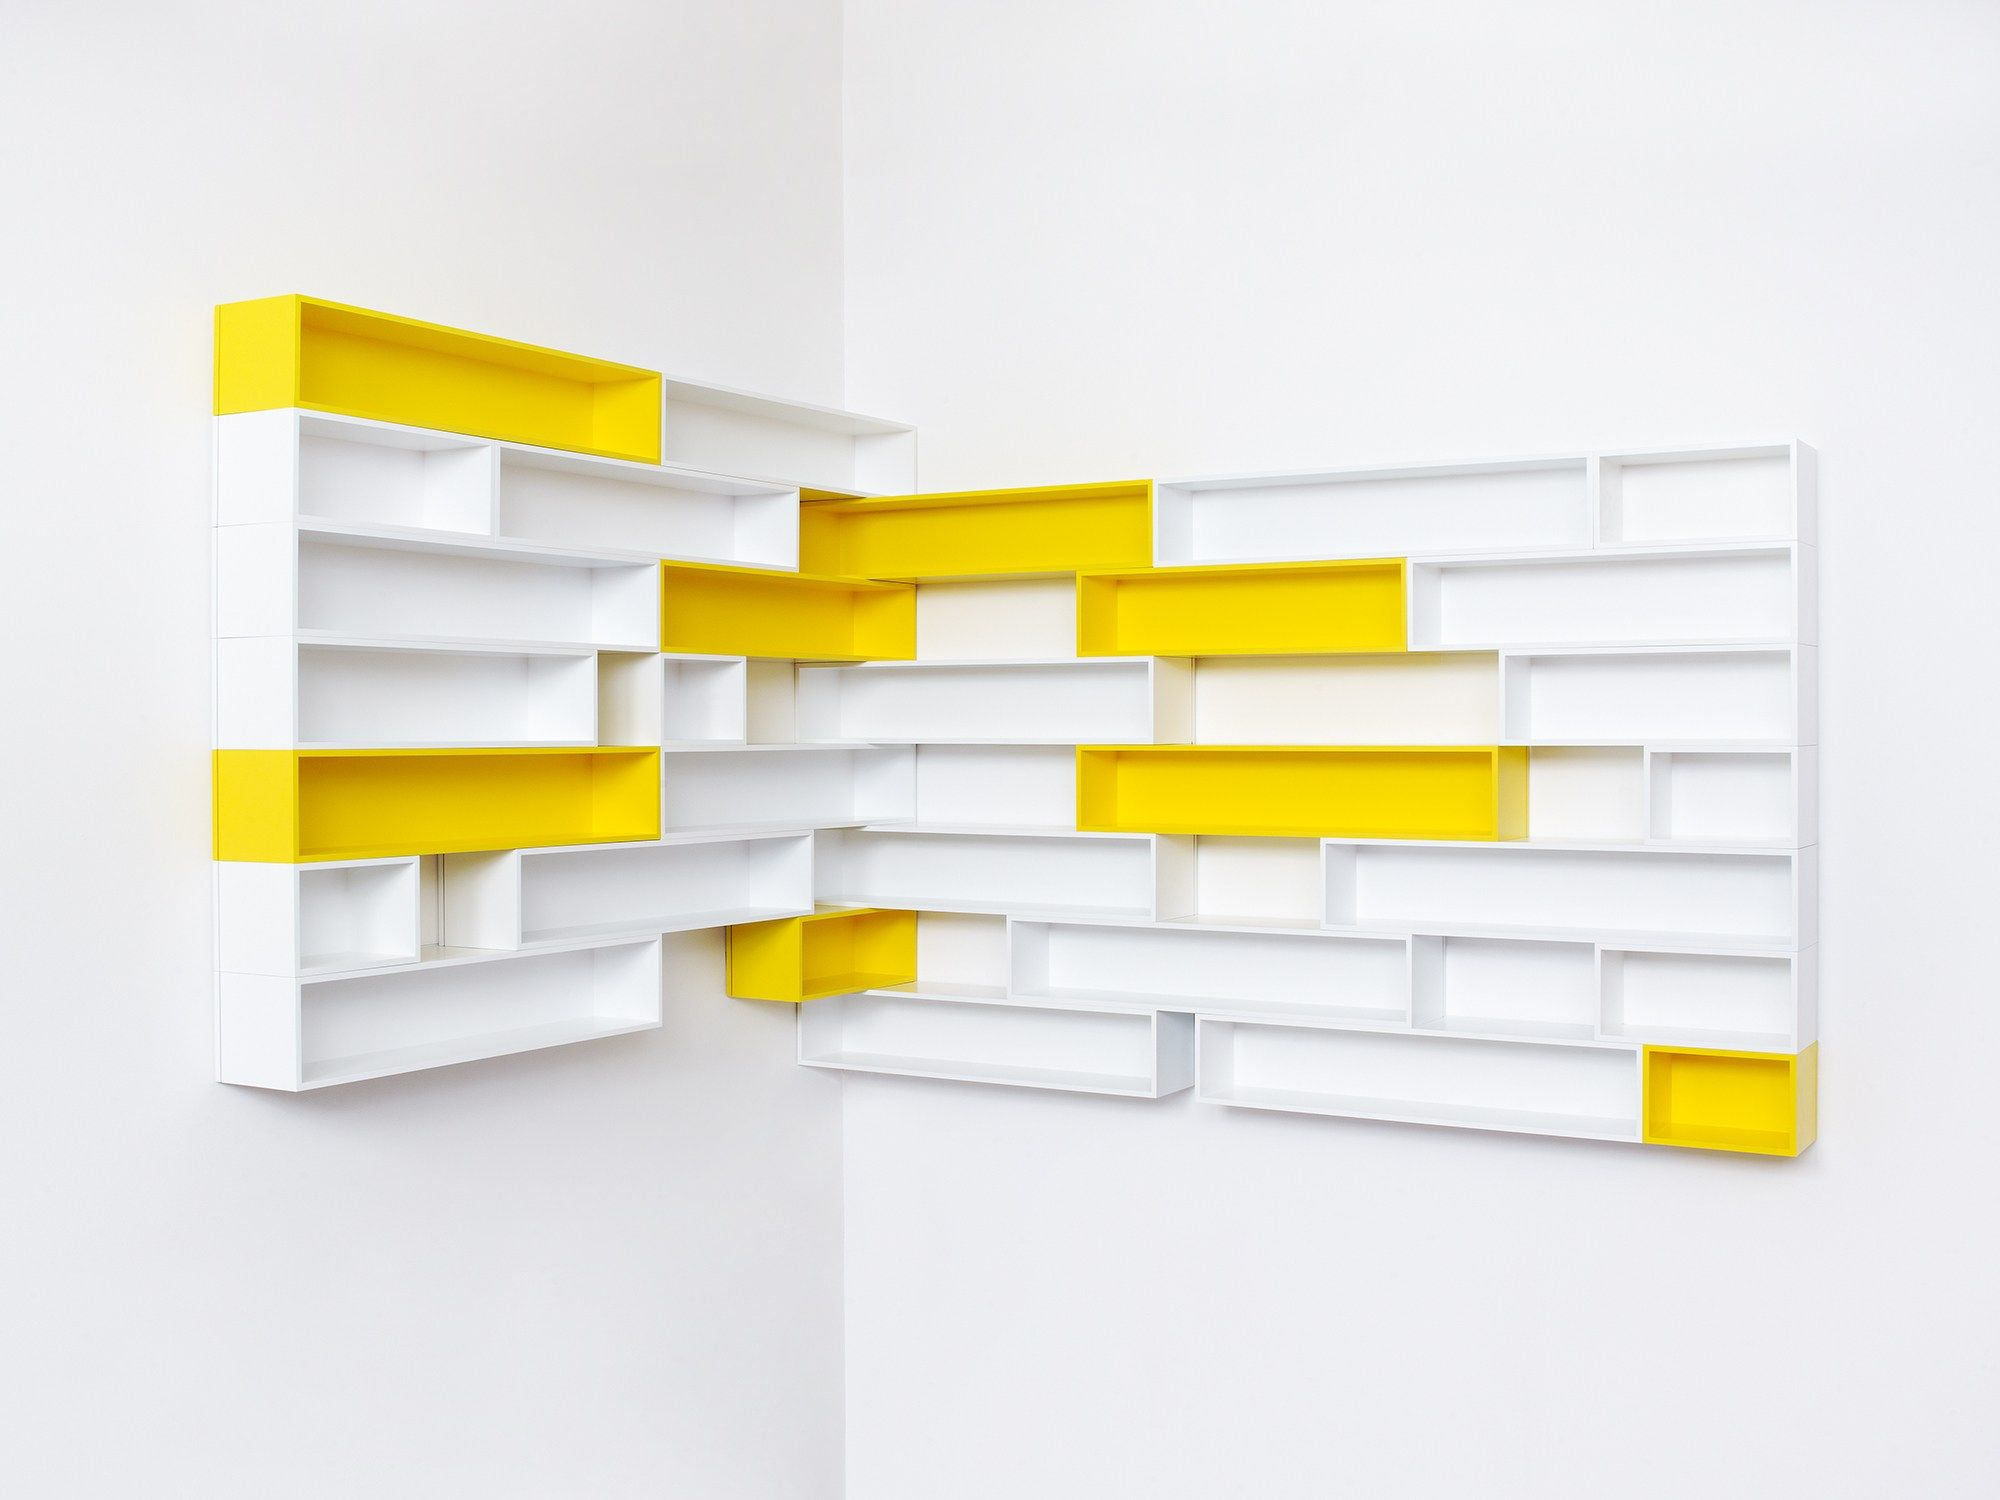 Sectional modular CD rack by Cubit by Mymito | design Cubit | Como ...